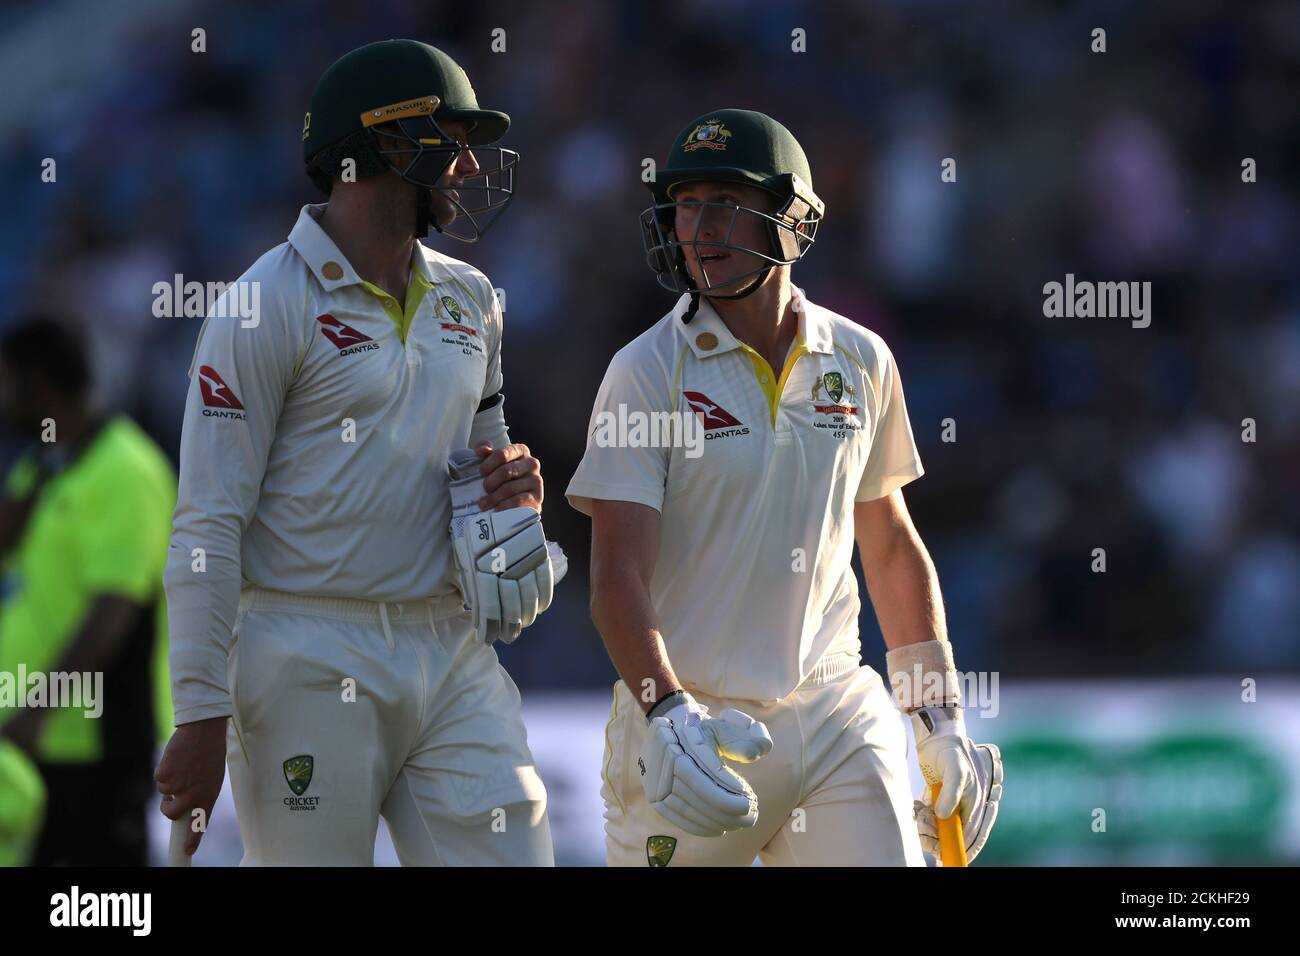 James Labuschagne High Resolution Stock Photography And Images Alamy